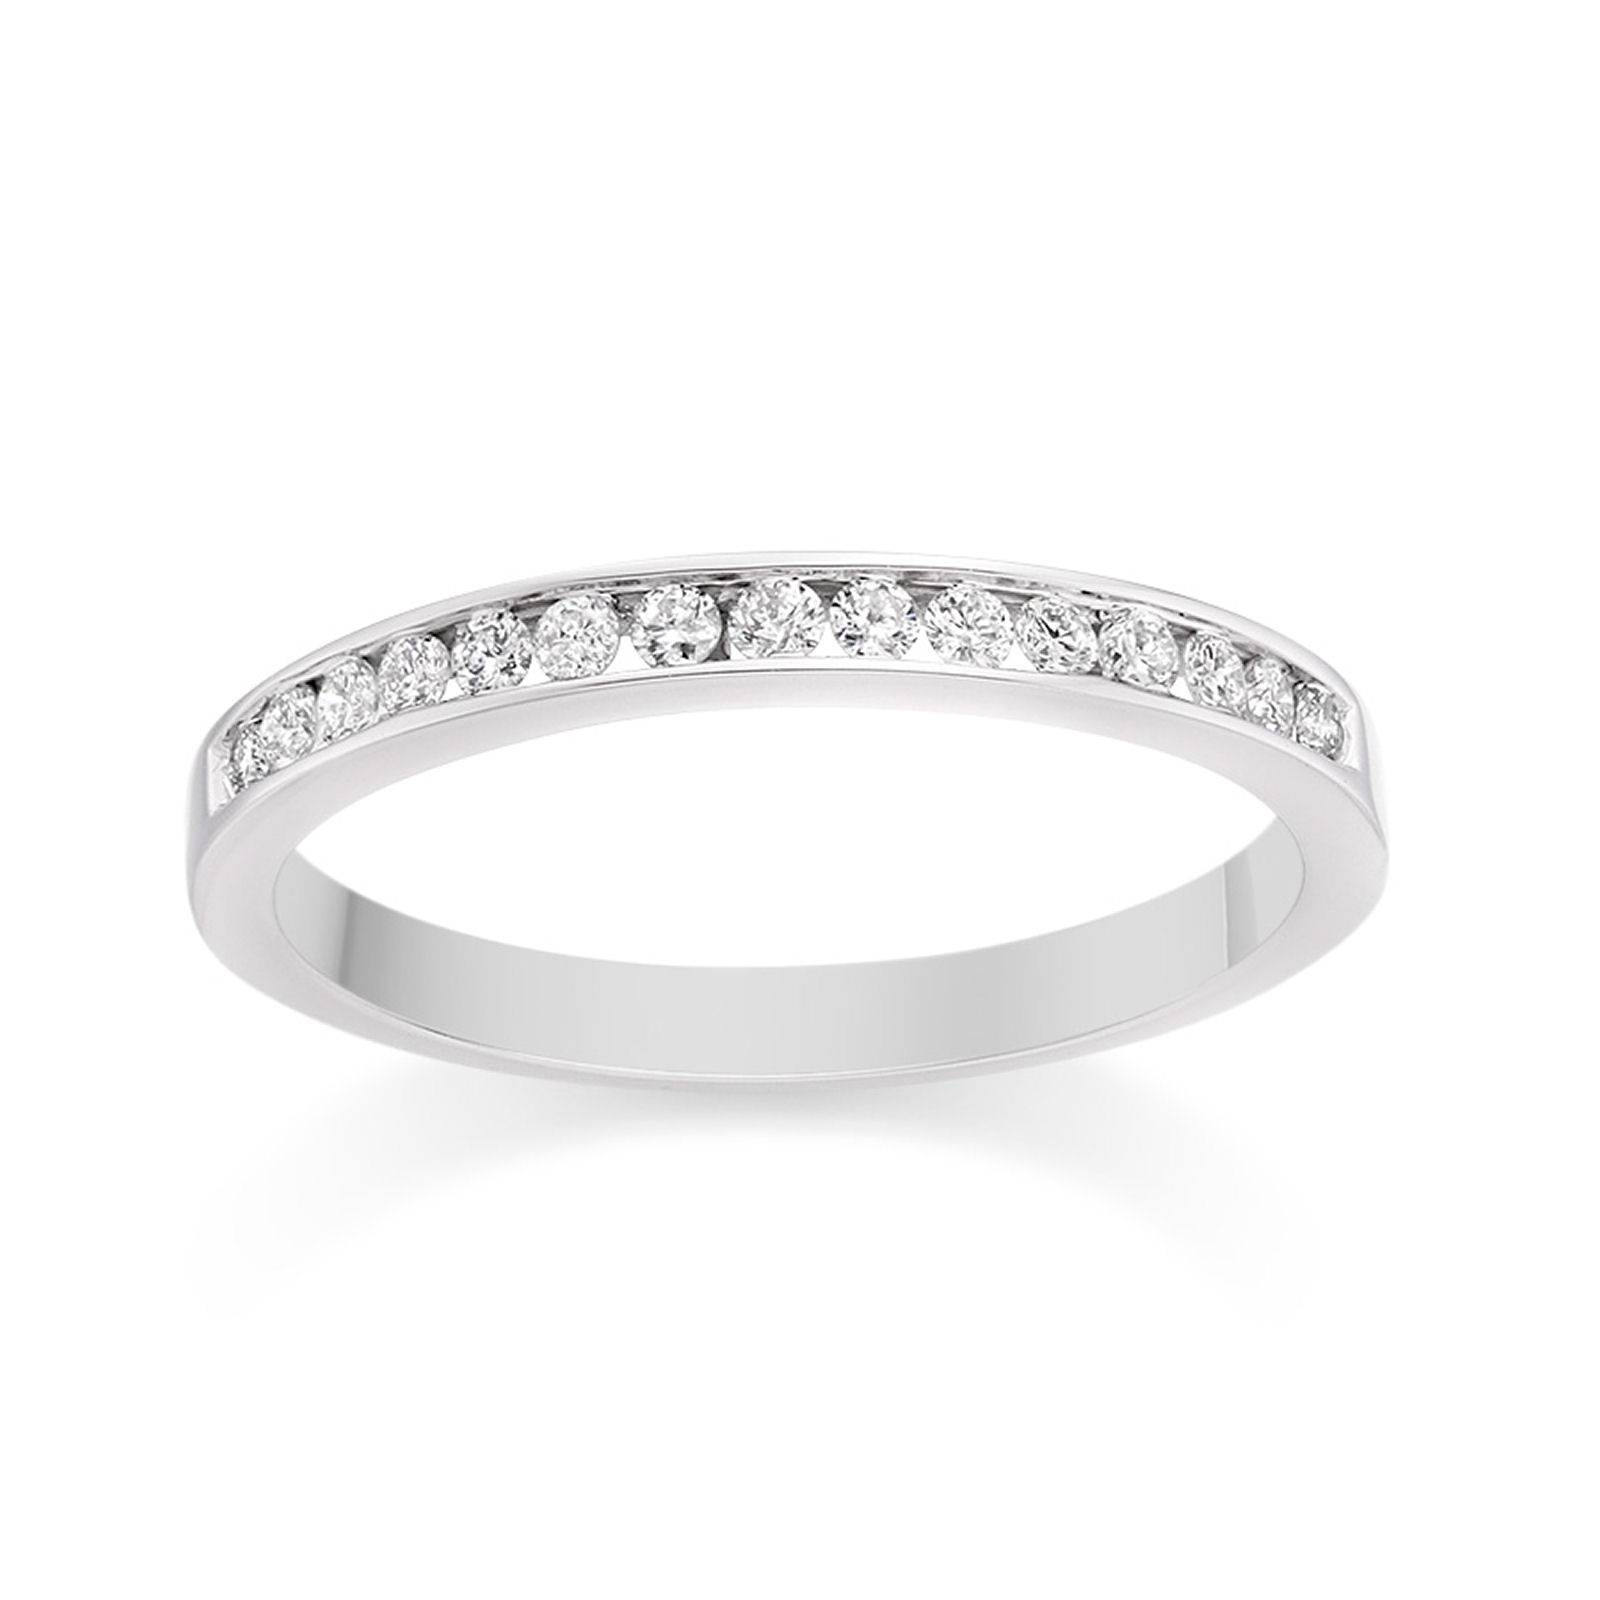 Channel Set Diamond Wedding Ring In Platinum Wedding Dress From Regarding Current Platinum Wedding Band With Diamonds (View 1 of 15)